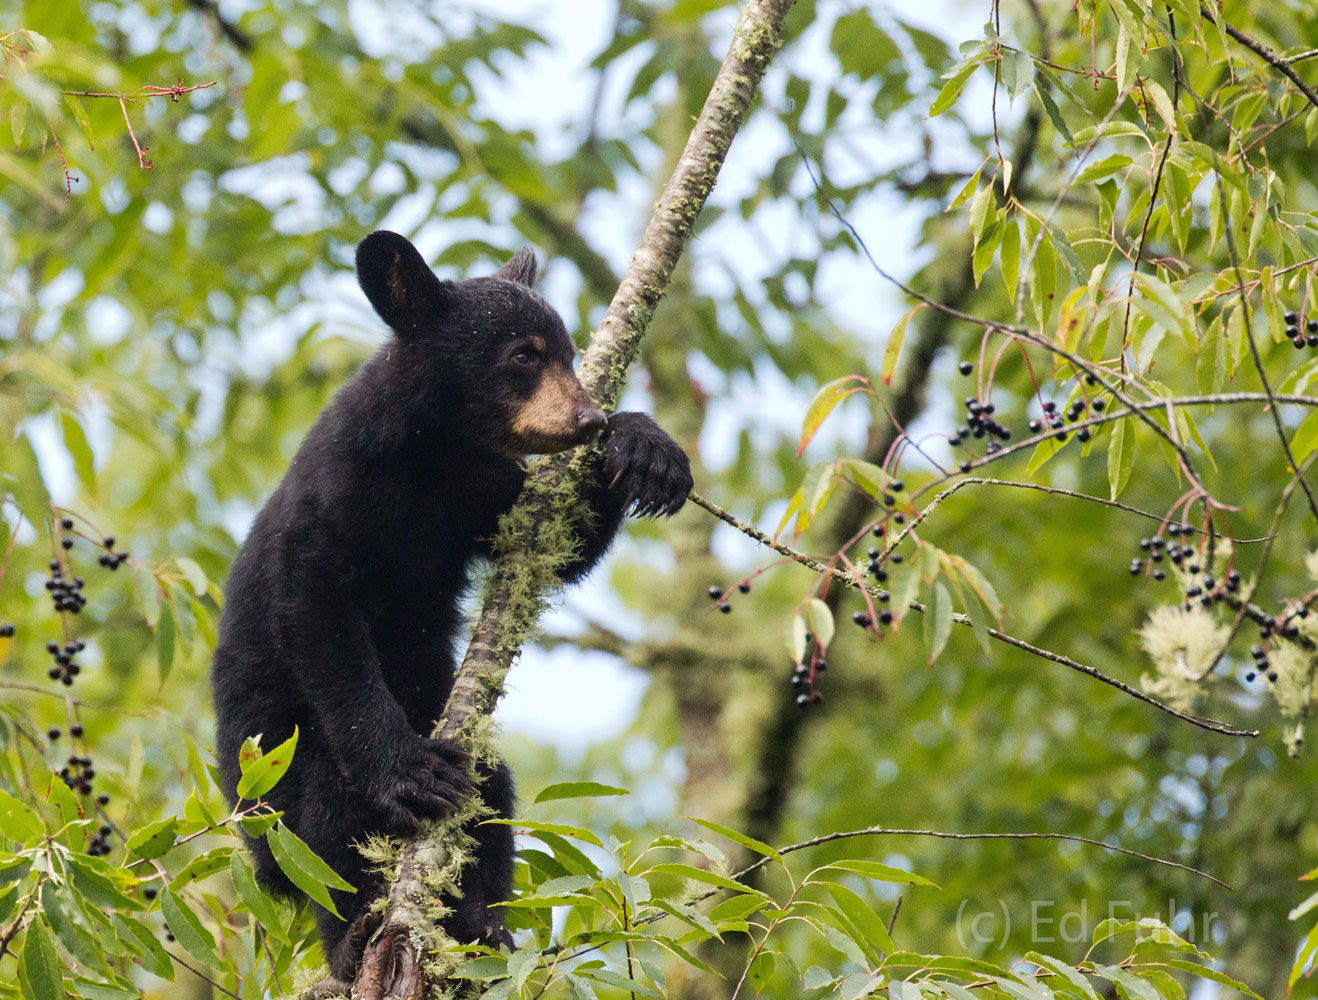 A black bear cub feasts on some cherries in Cades Cove.